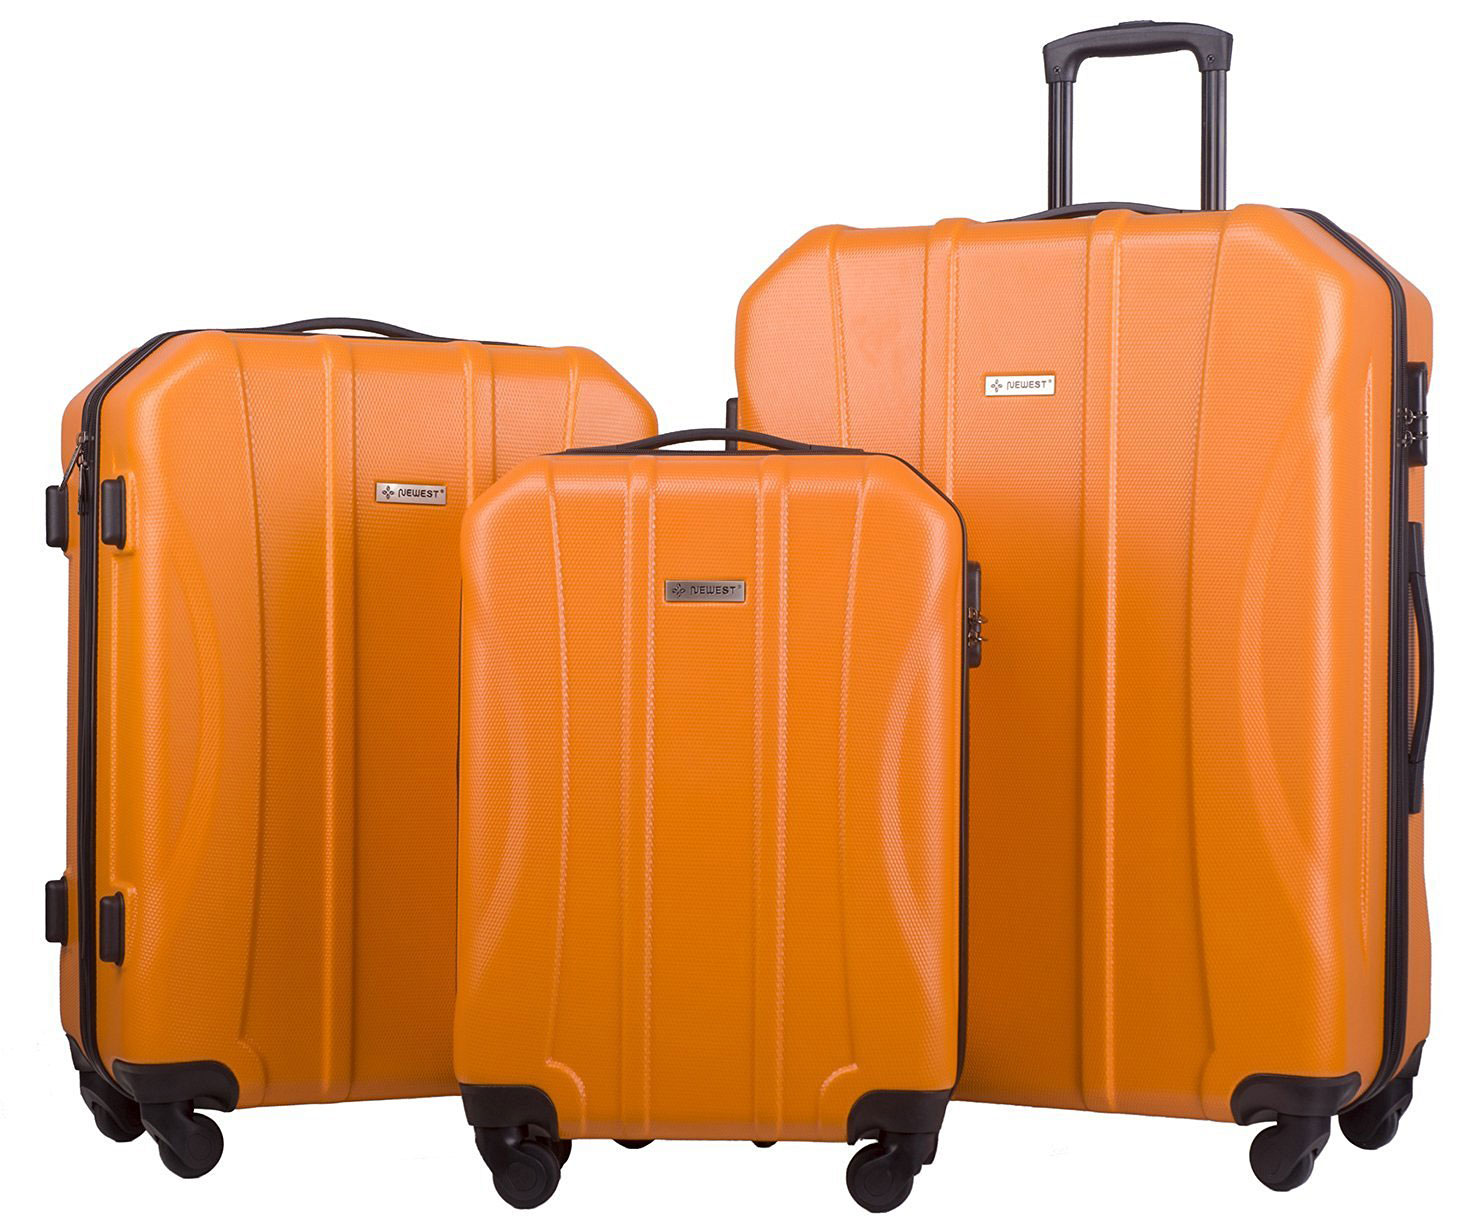 Merax Newest 3-piece Luggage Spinner Suitcase Sets